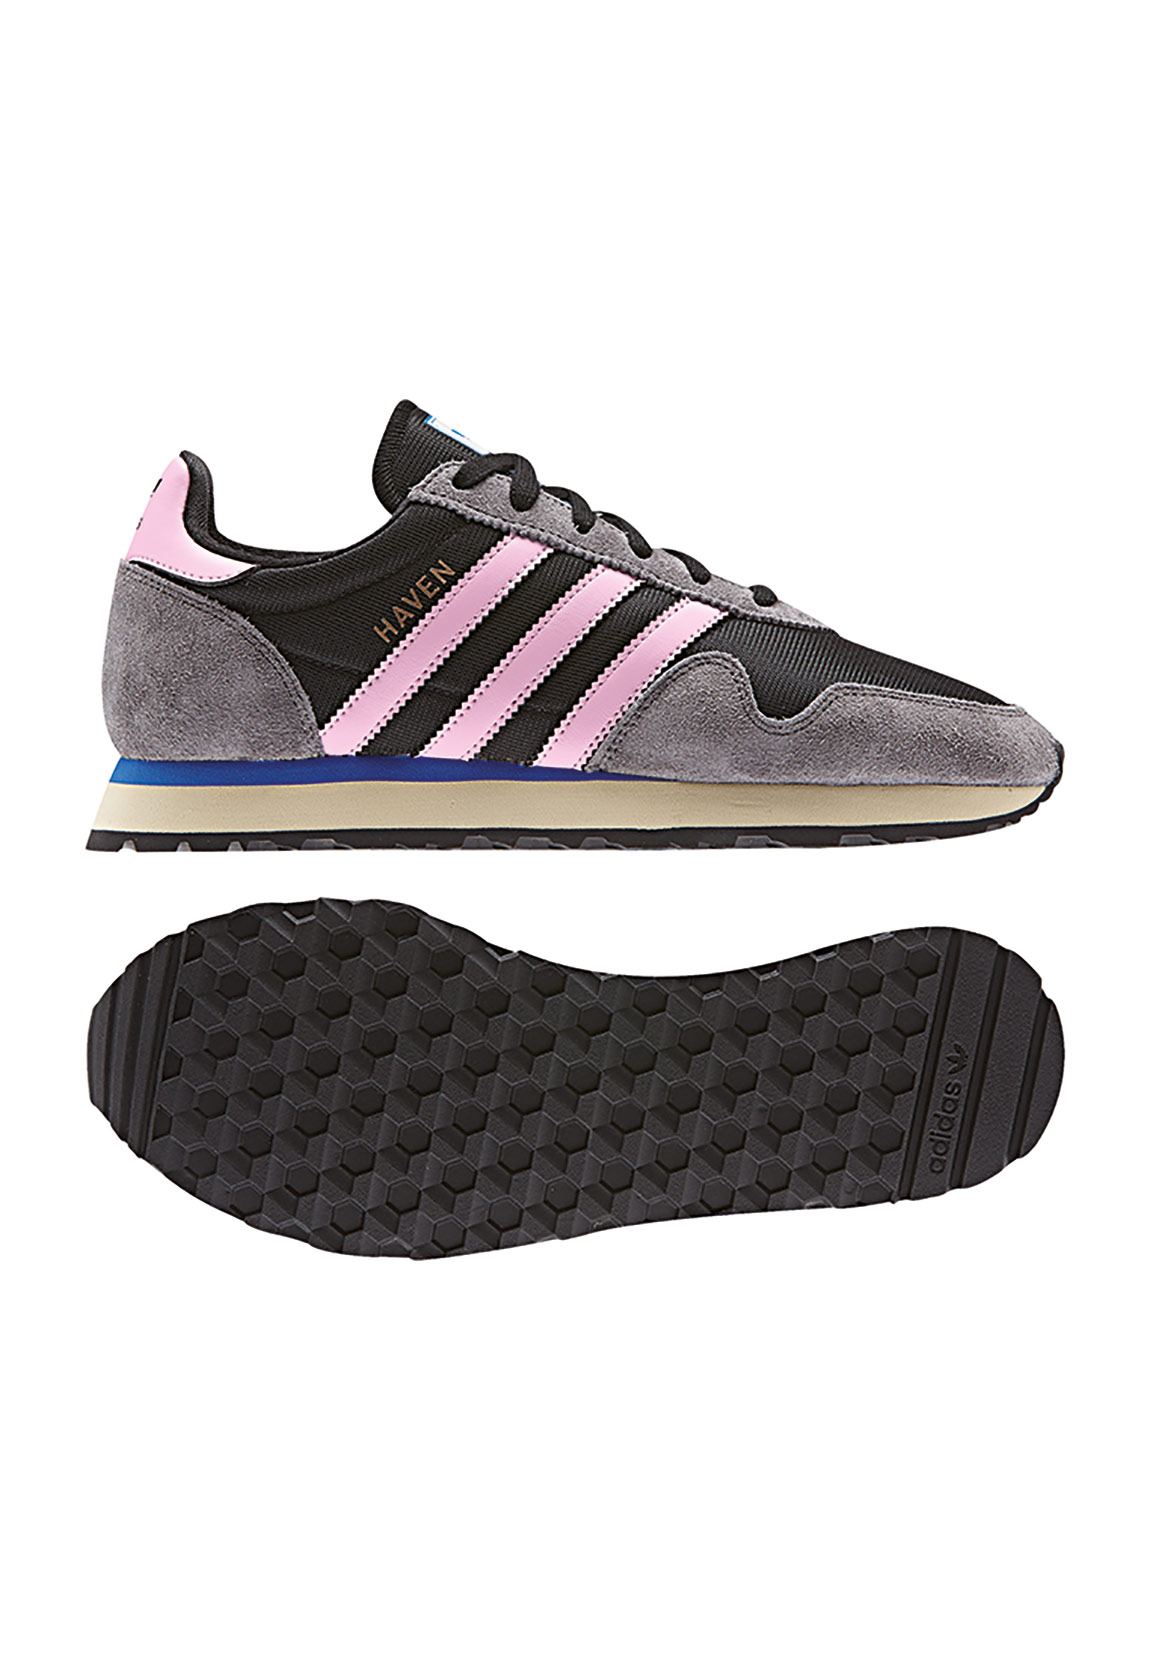 adidas sneaker damen haven w by9572 schwarz pink schuhe damen. Black Bedroom Furniture Sets. Home Design Ideas